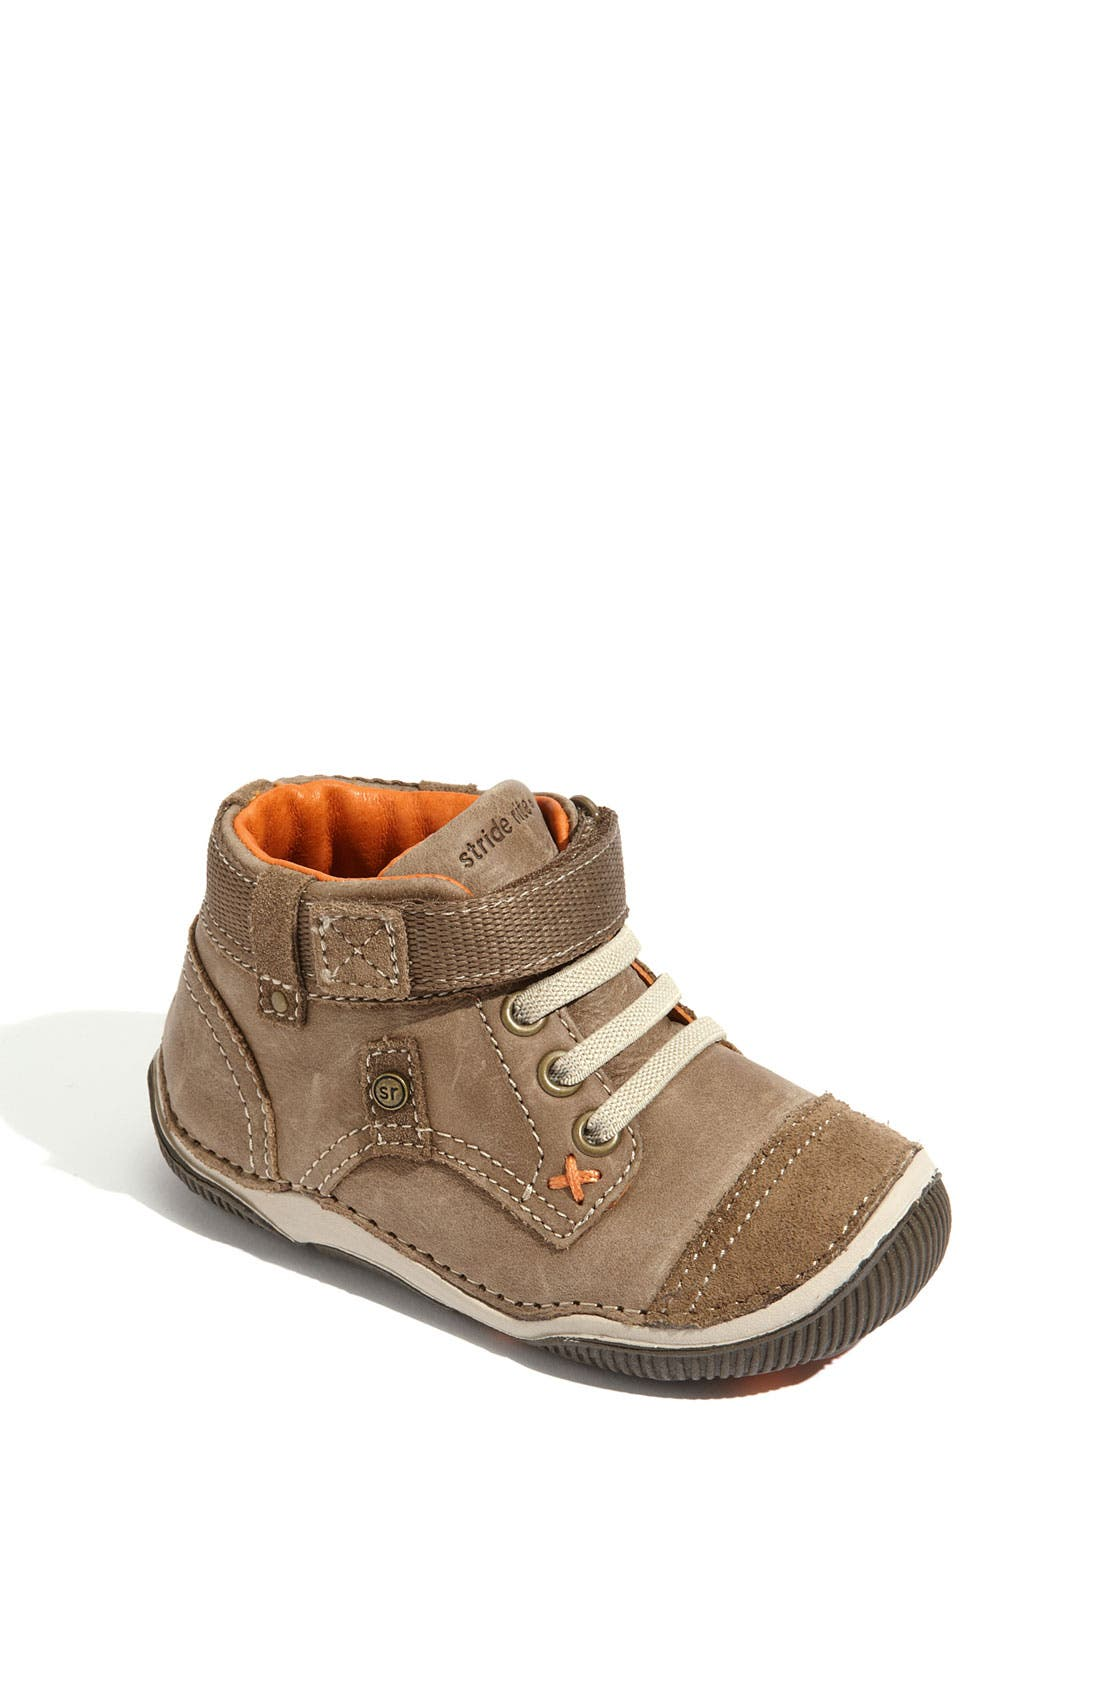 Main Image - Stride Rite 'Garett' Shoe (Baby, Walker & Toddler)